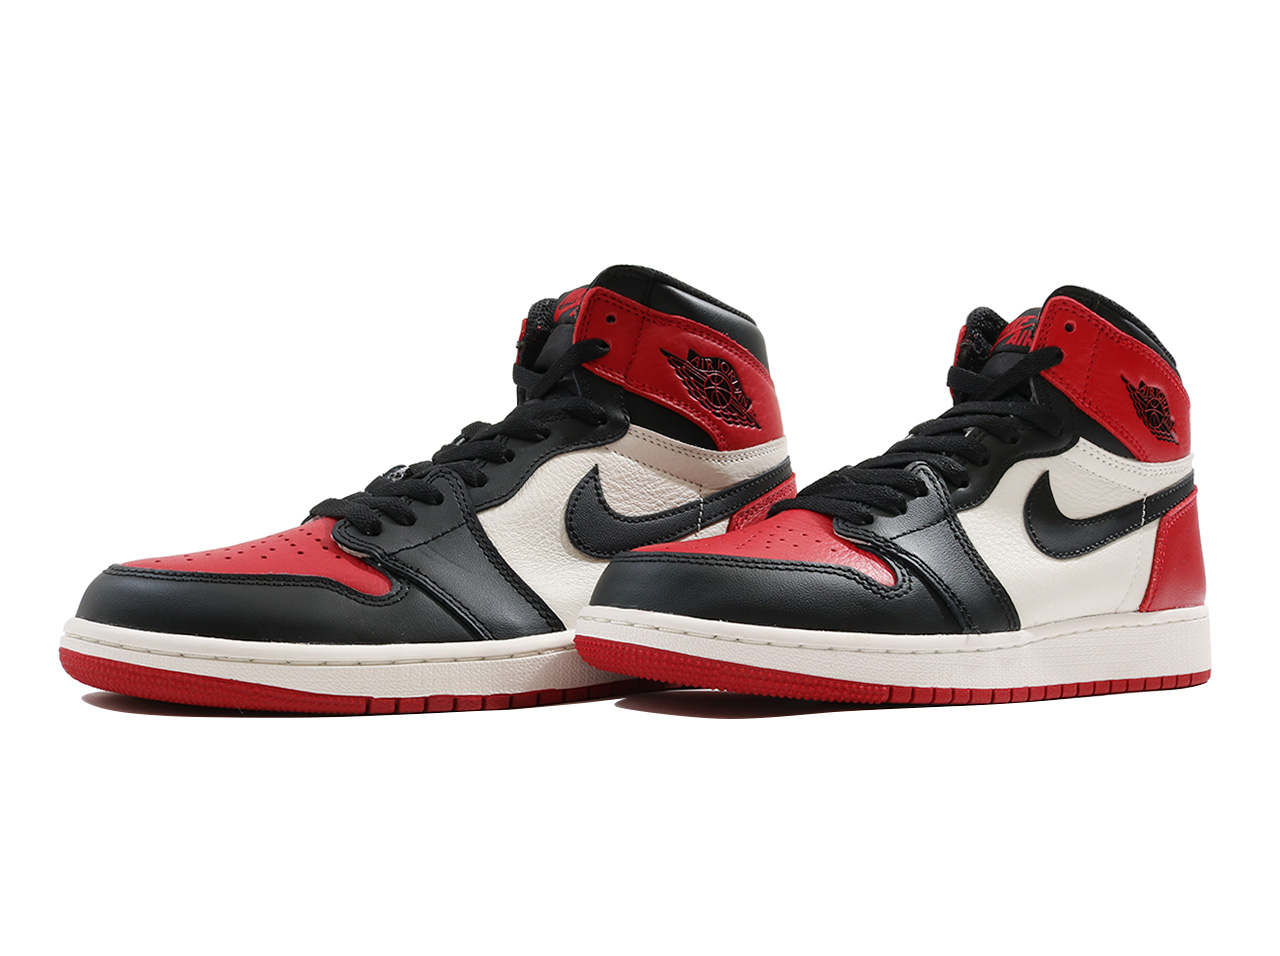 jordan_air_jordan_1_retro_high_og_bg_555088_610_575441_610